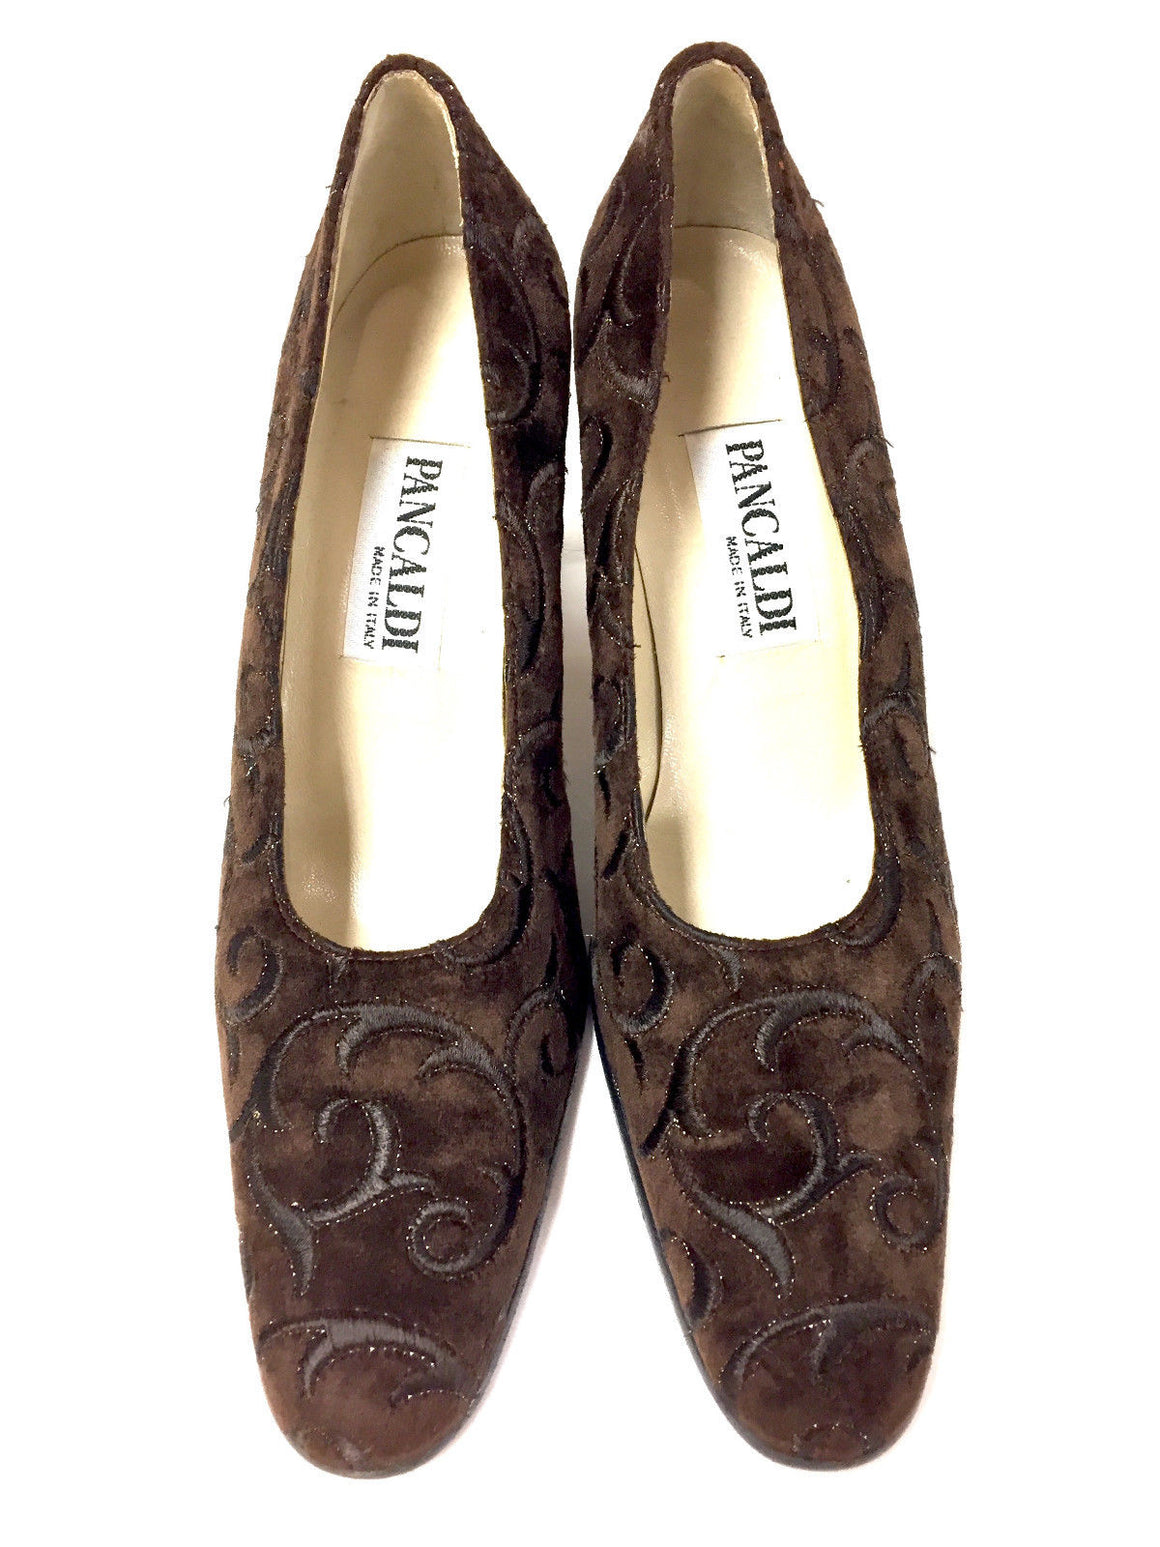 PANCALDI Brown Embroidered Velvet Gold Accent Heel Pumps  Size: 6.5